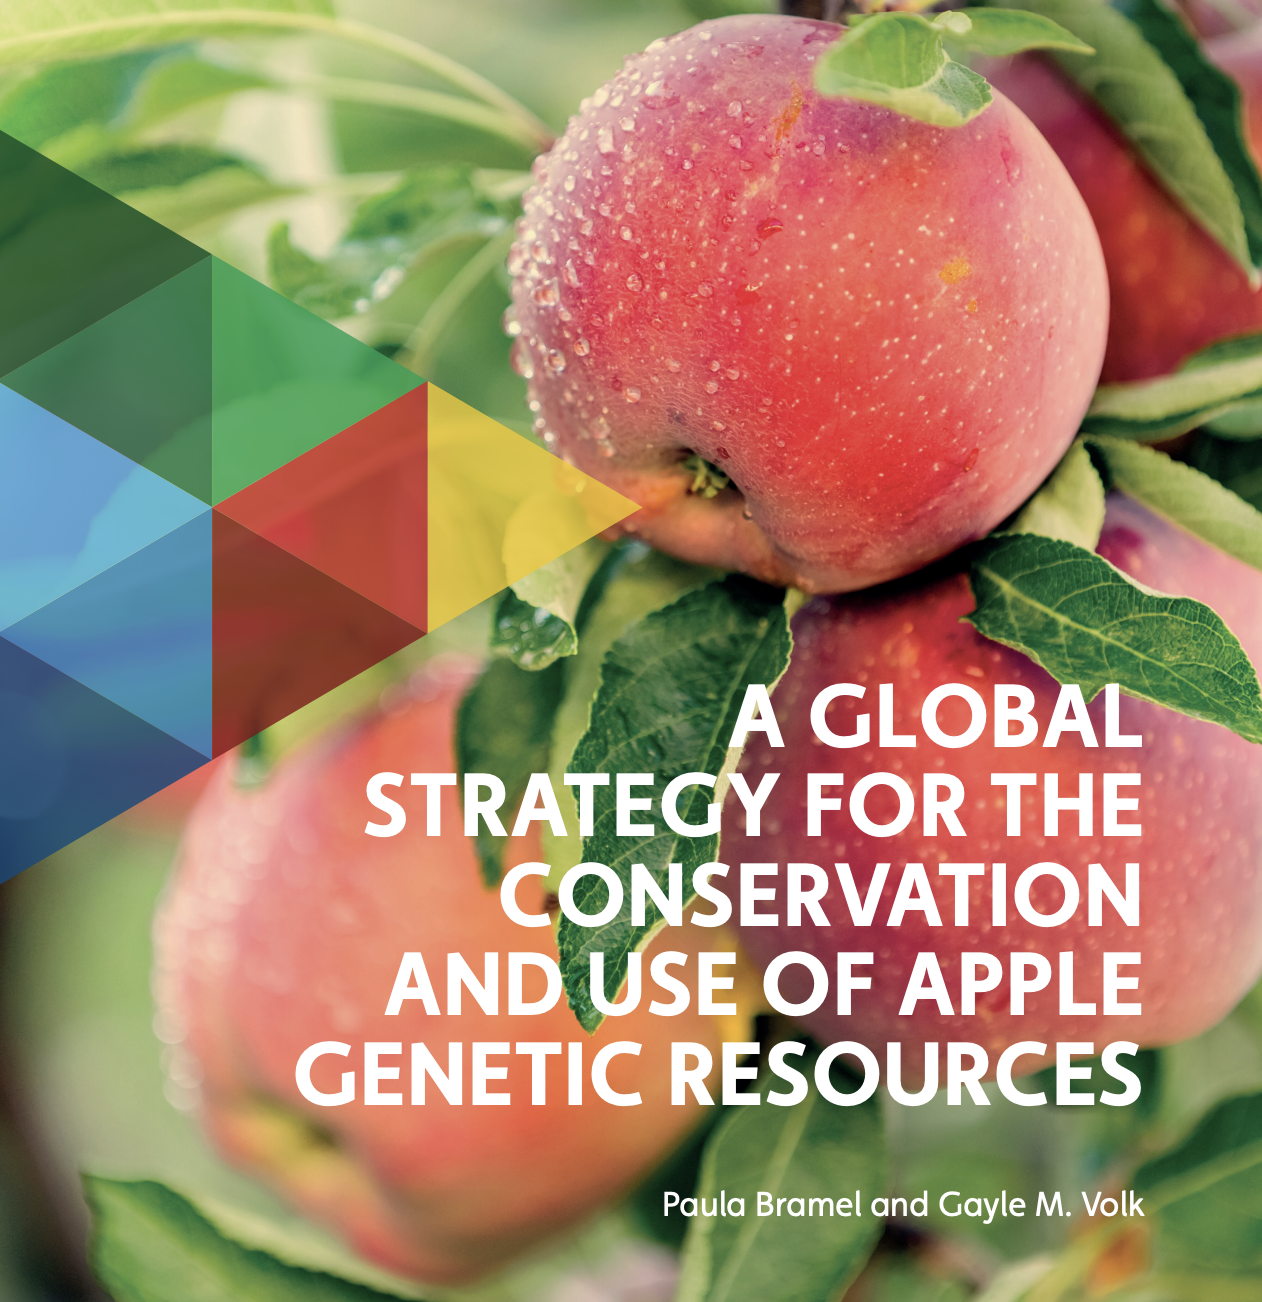 Title page for the Global Strategy for the Conservation and Use of Apple Genetic Resources report